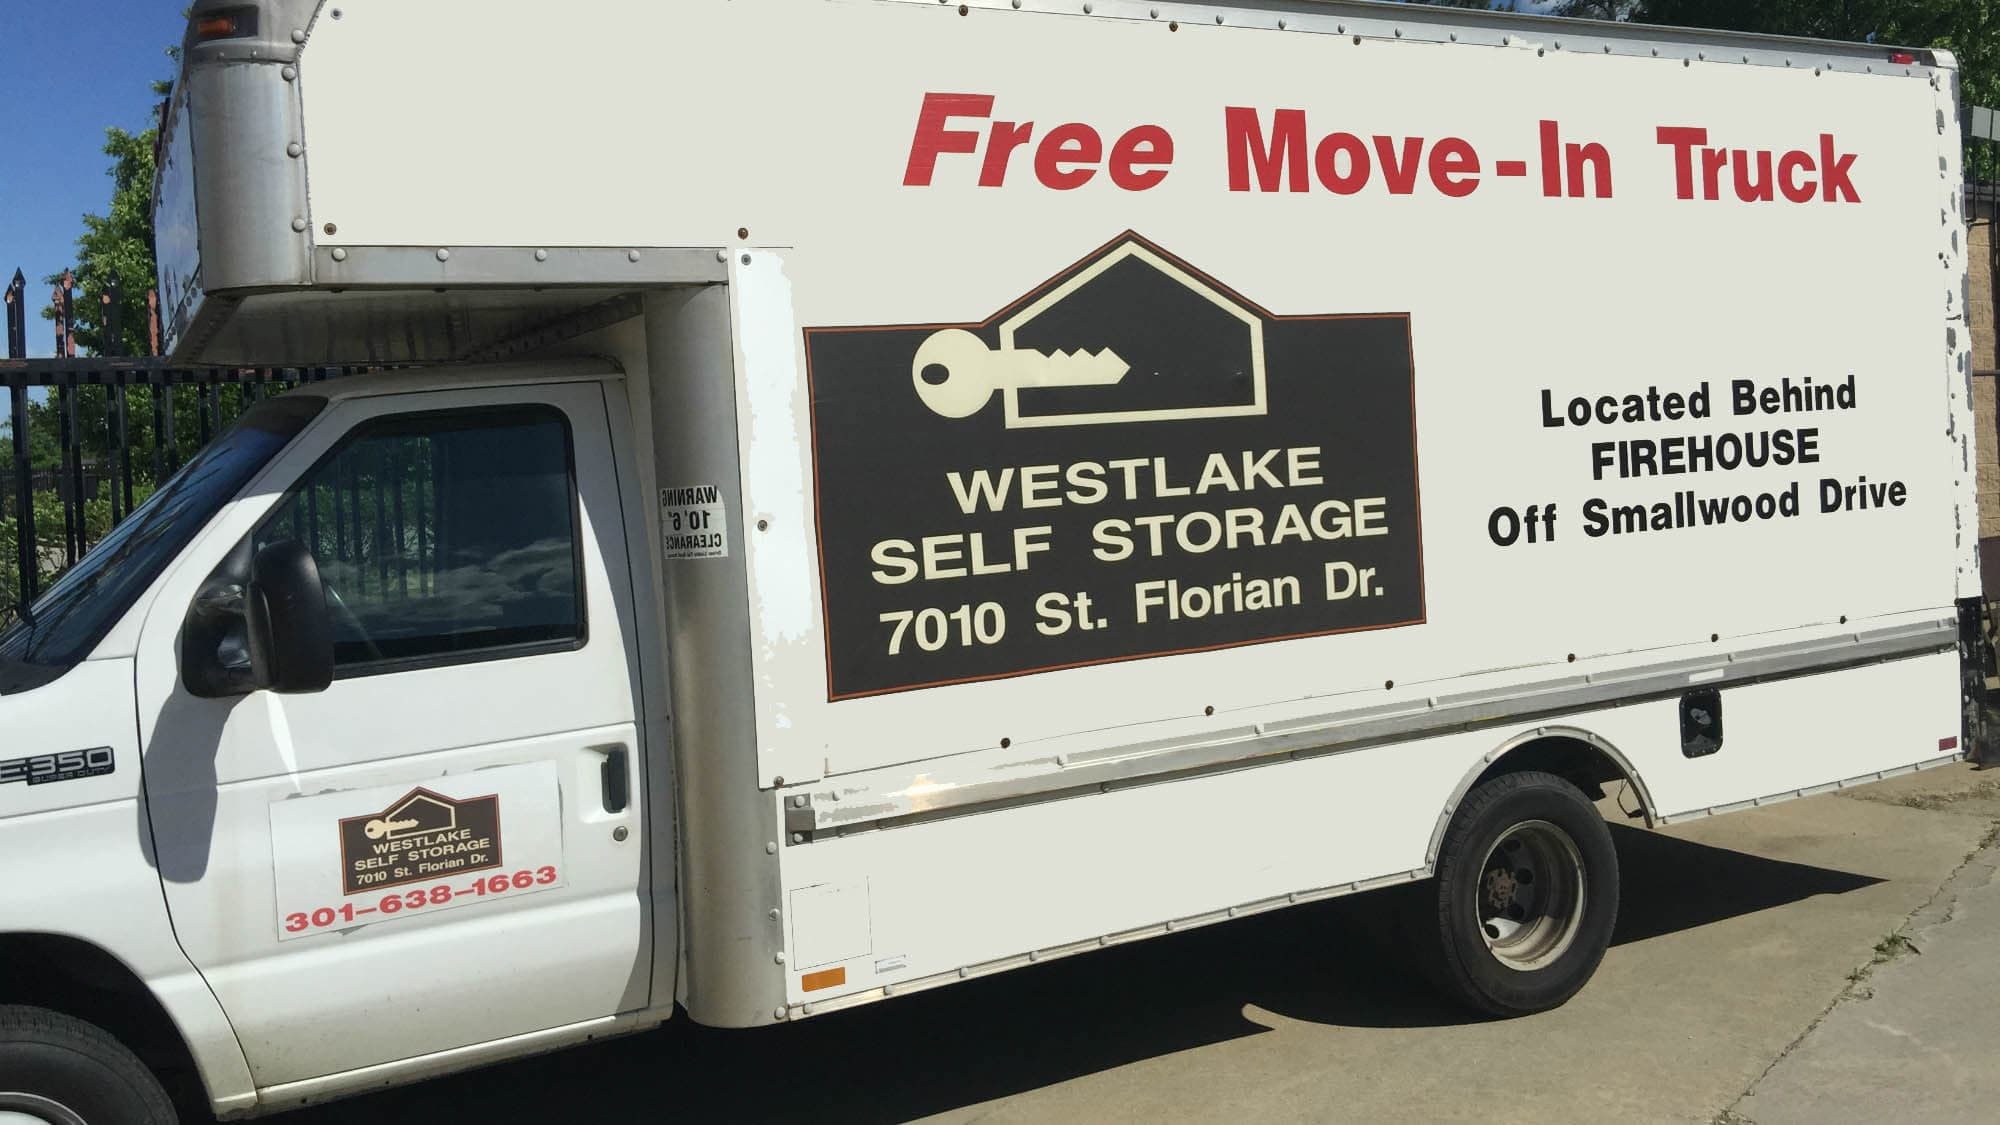 Moving truck available at Westlake Self Storage in Waldorf, MD